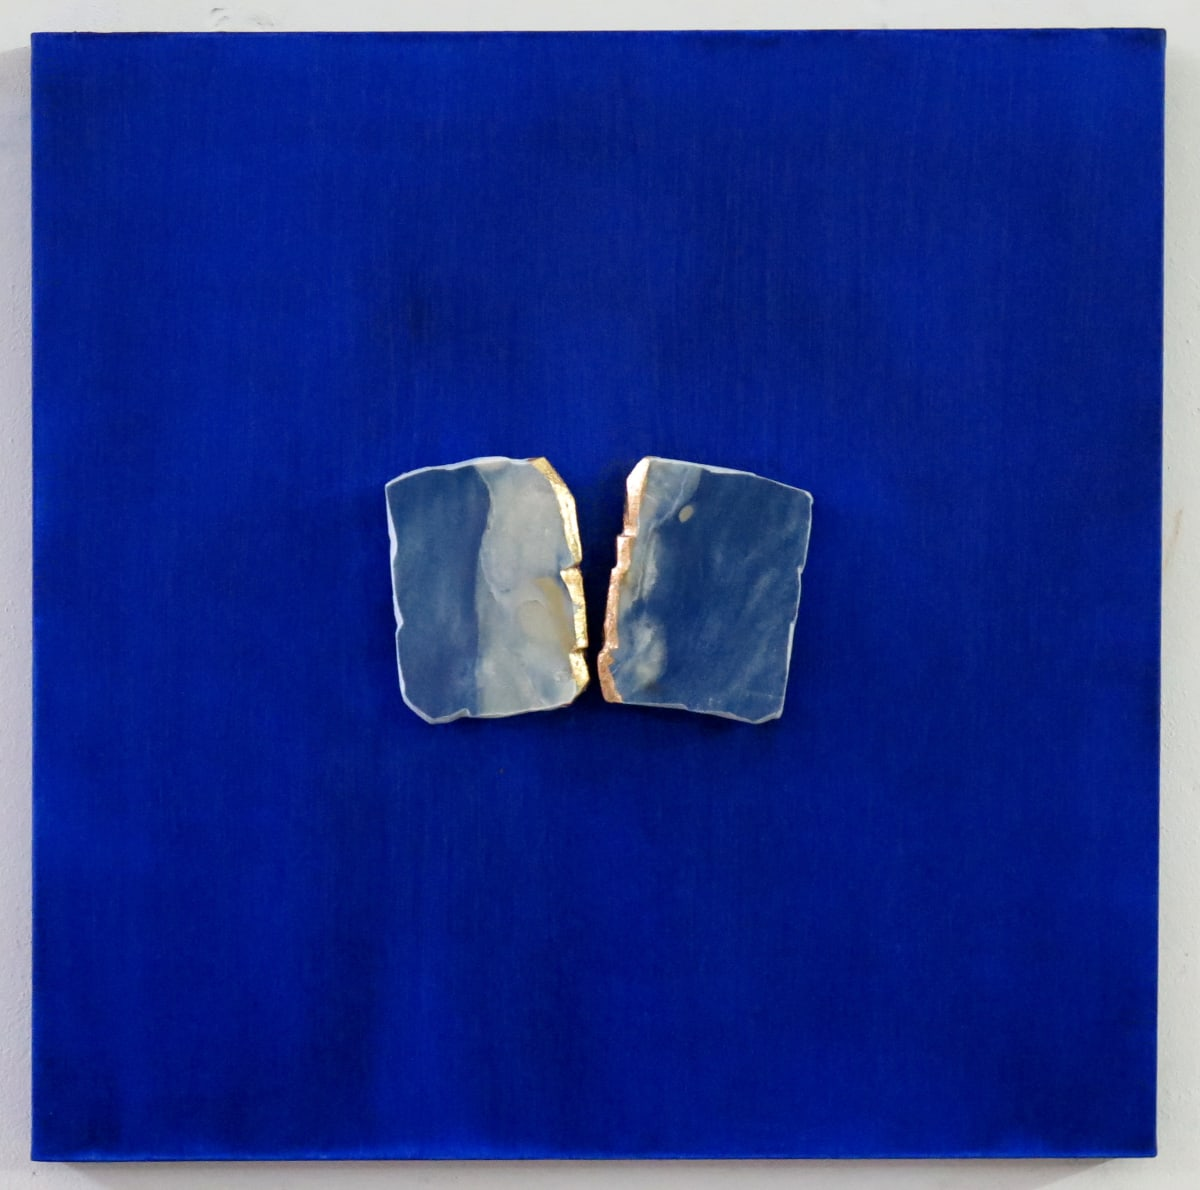 Gioni David Parra Matter Conceptual XI , 2018 Oil on canvas with azul Macaubas marble inserts and gold leaf 60 x 60 cm (23.6 x 23.6 in)